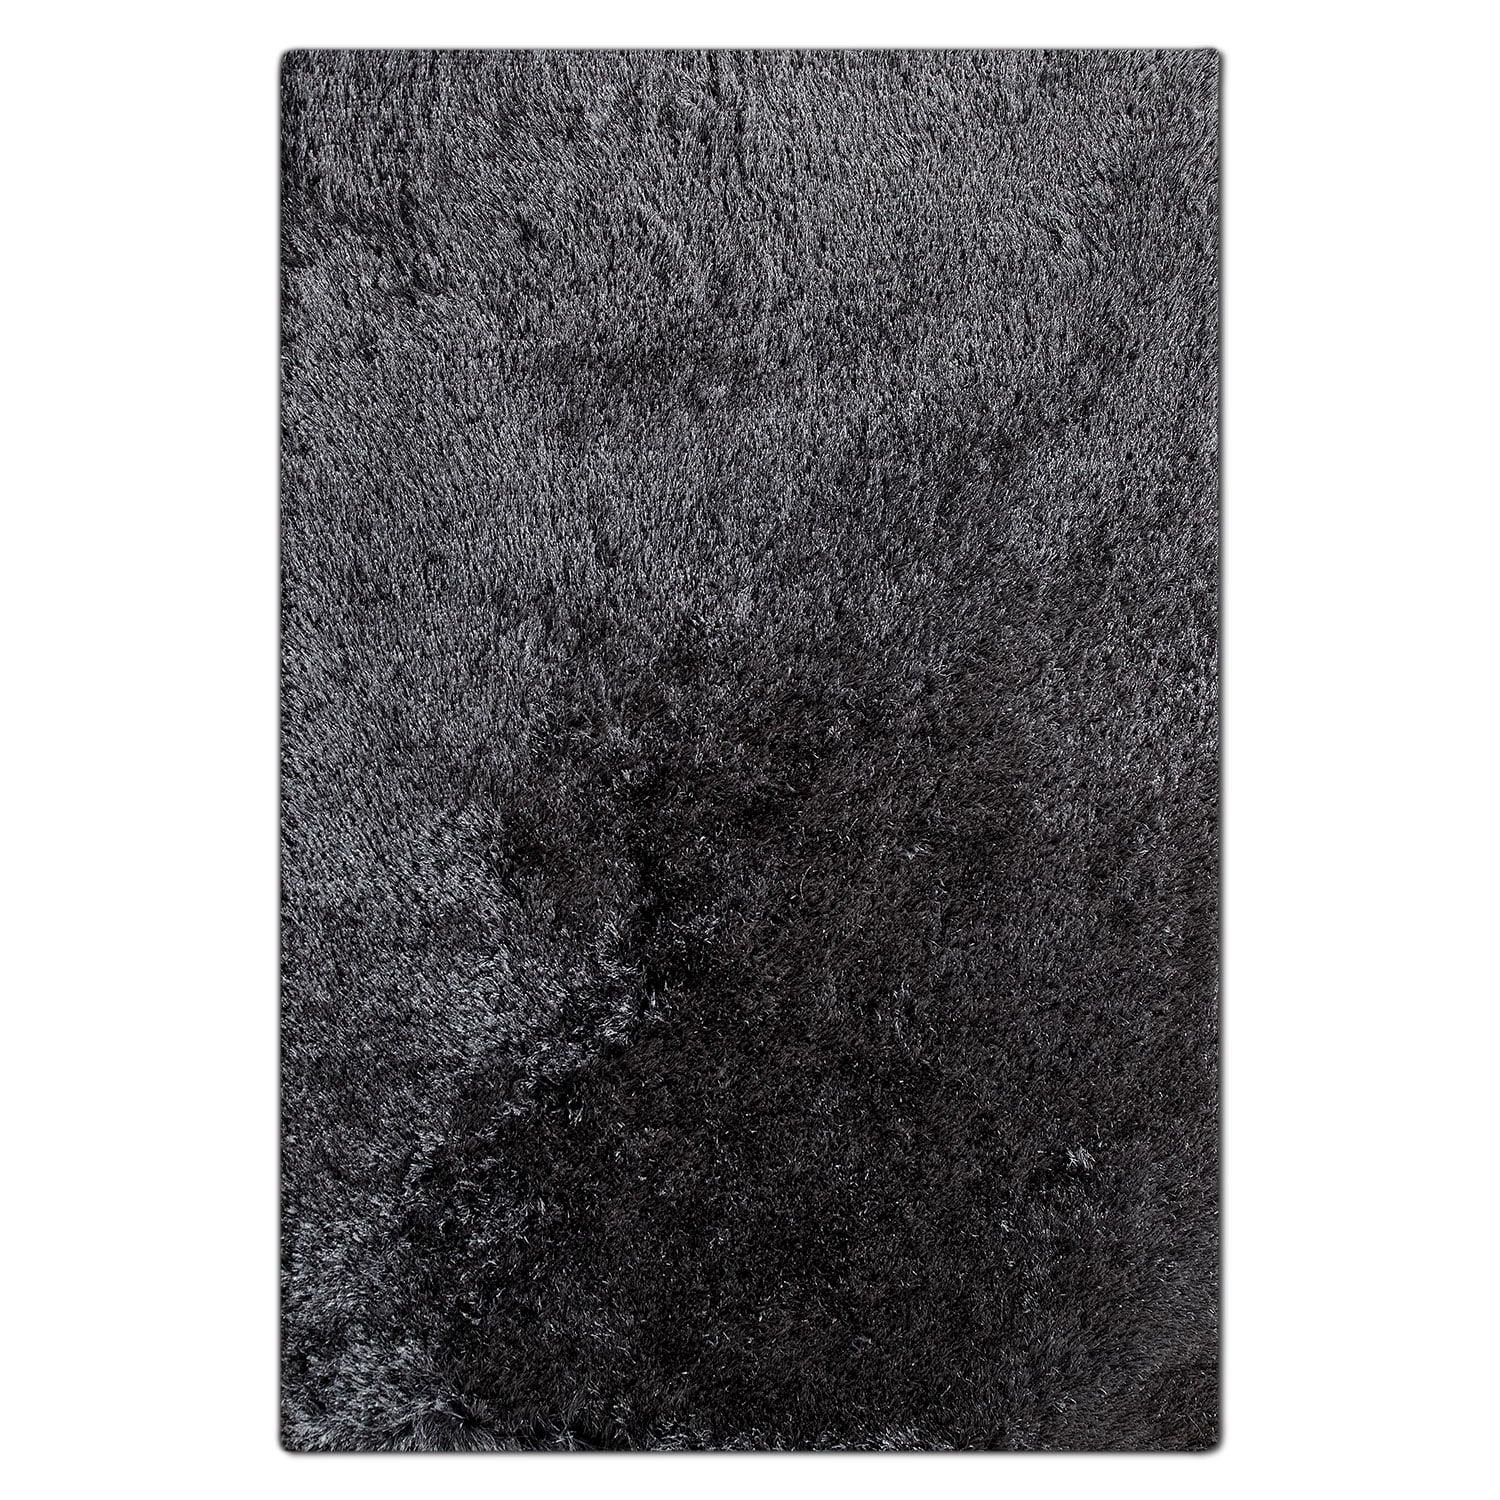 Rugs - Luxe 5' x 8' Area Rug - Charcoal